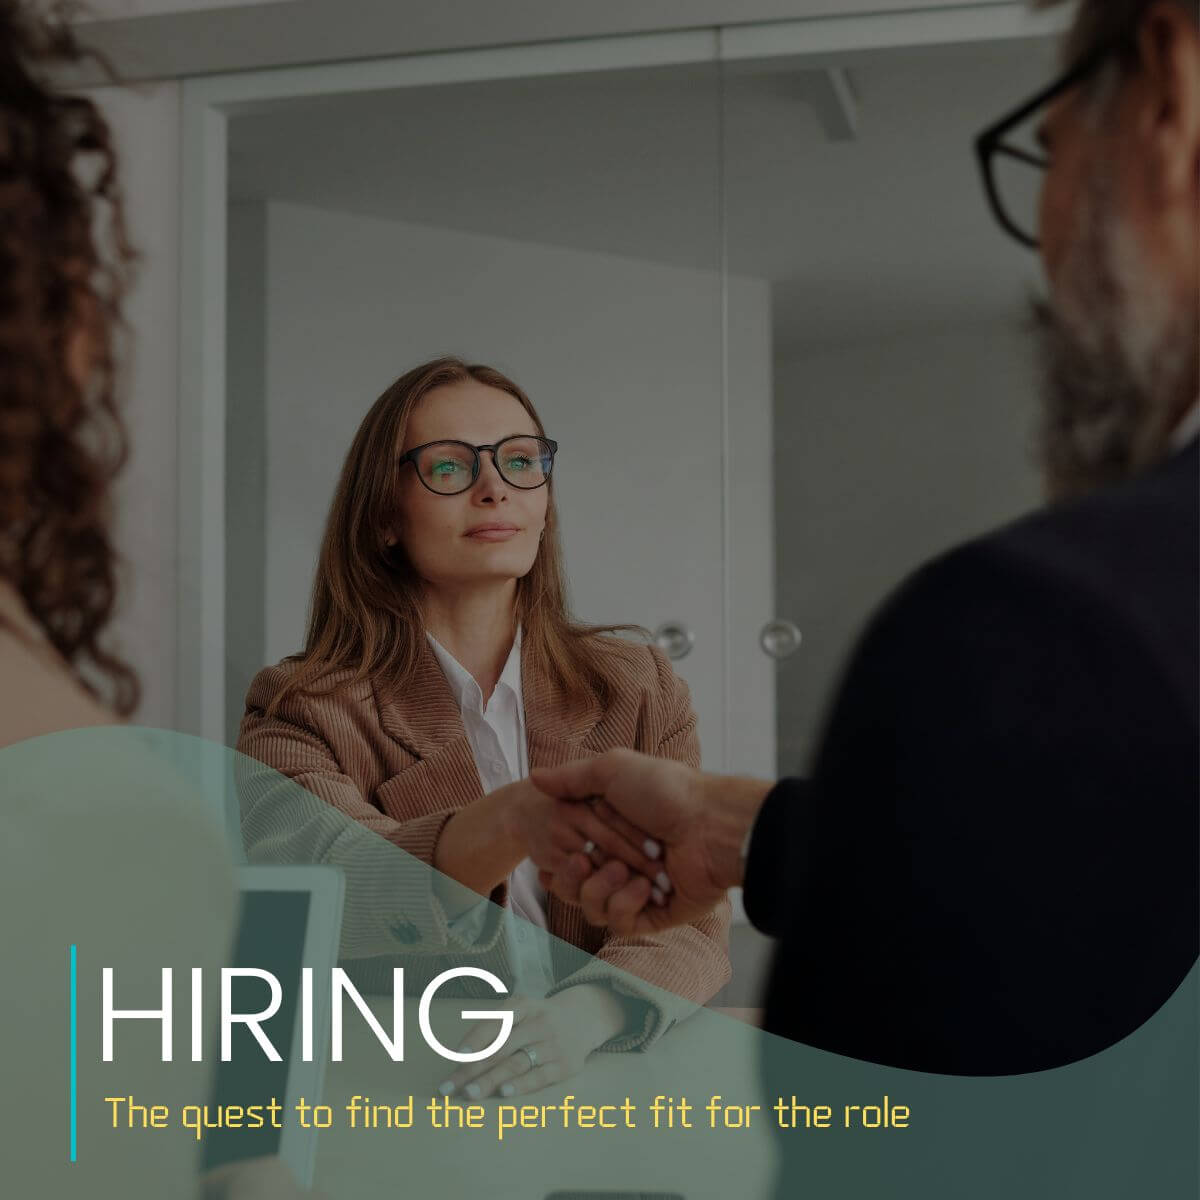 Hiring experiences at CoreView